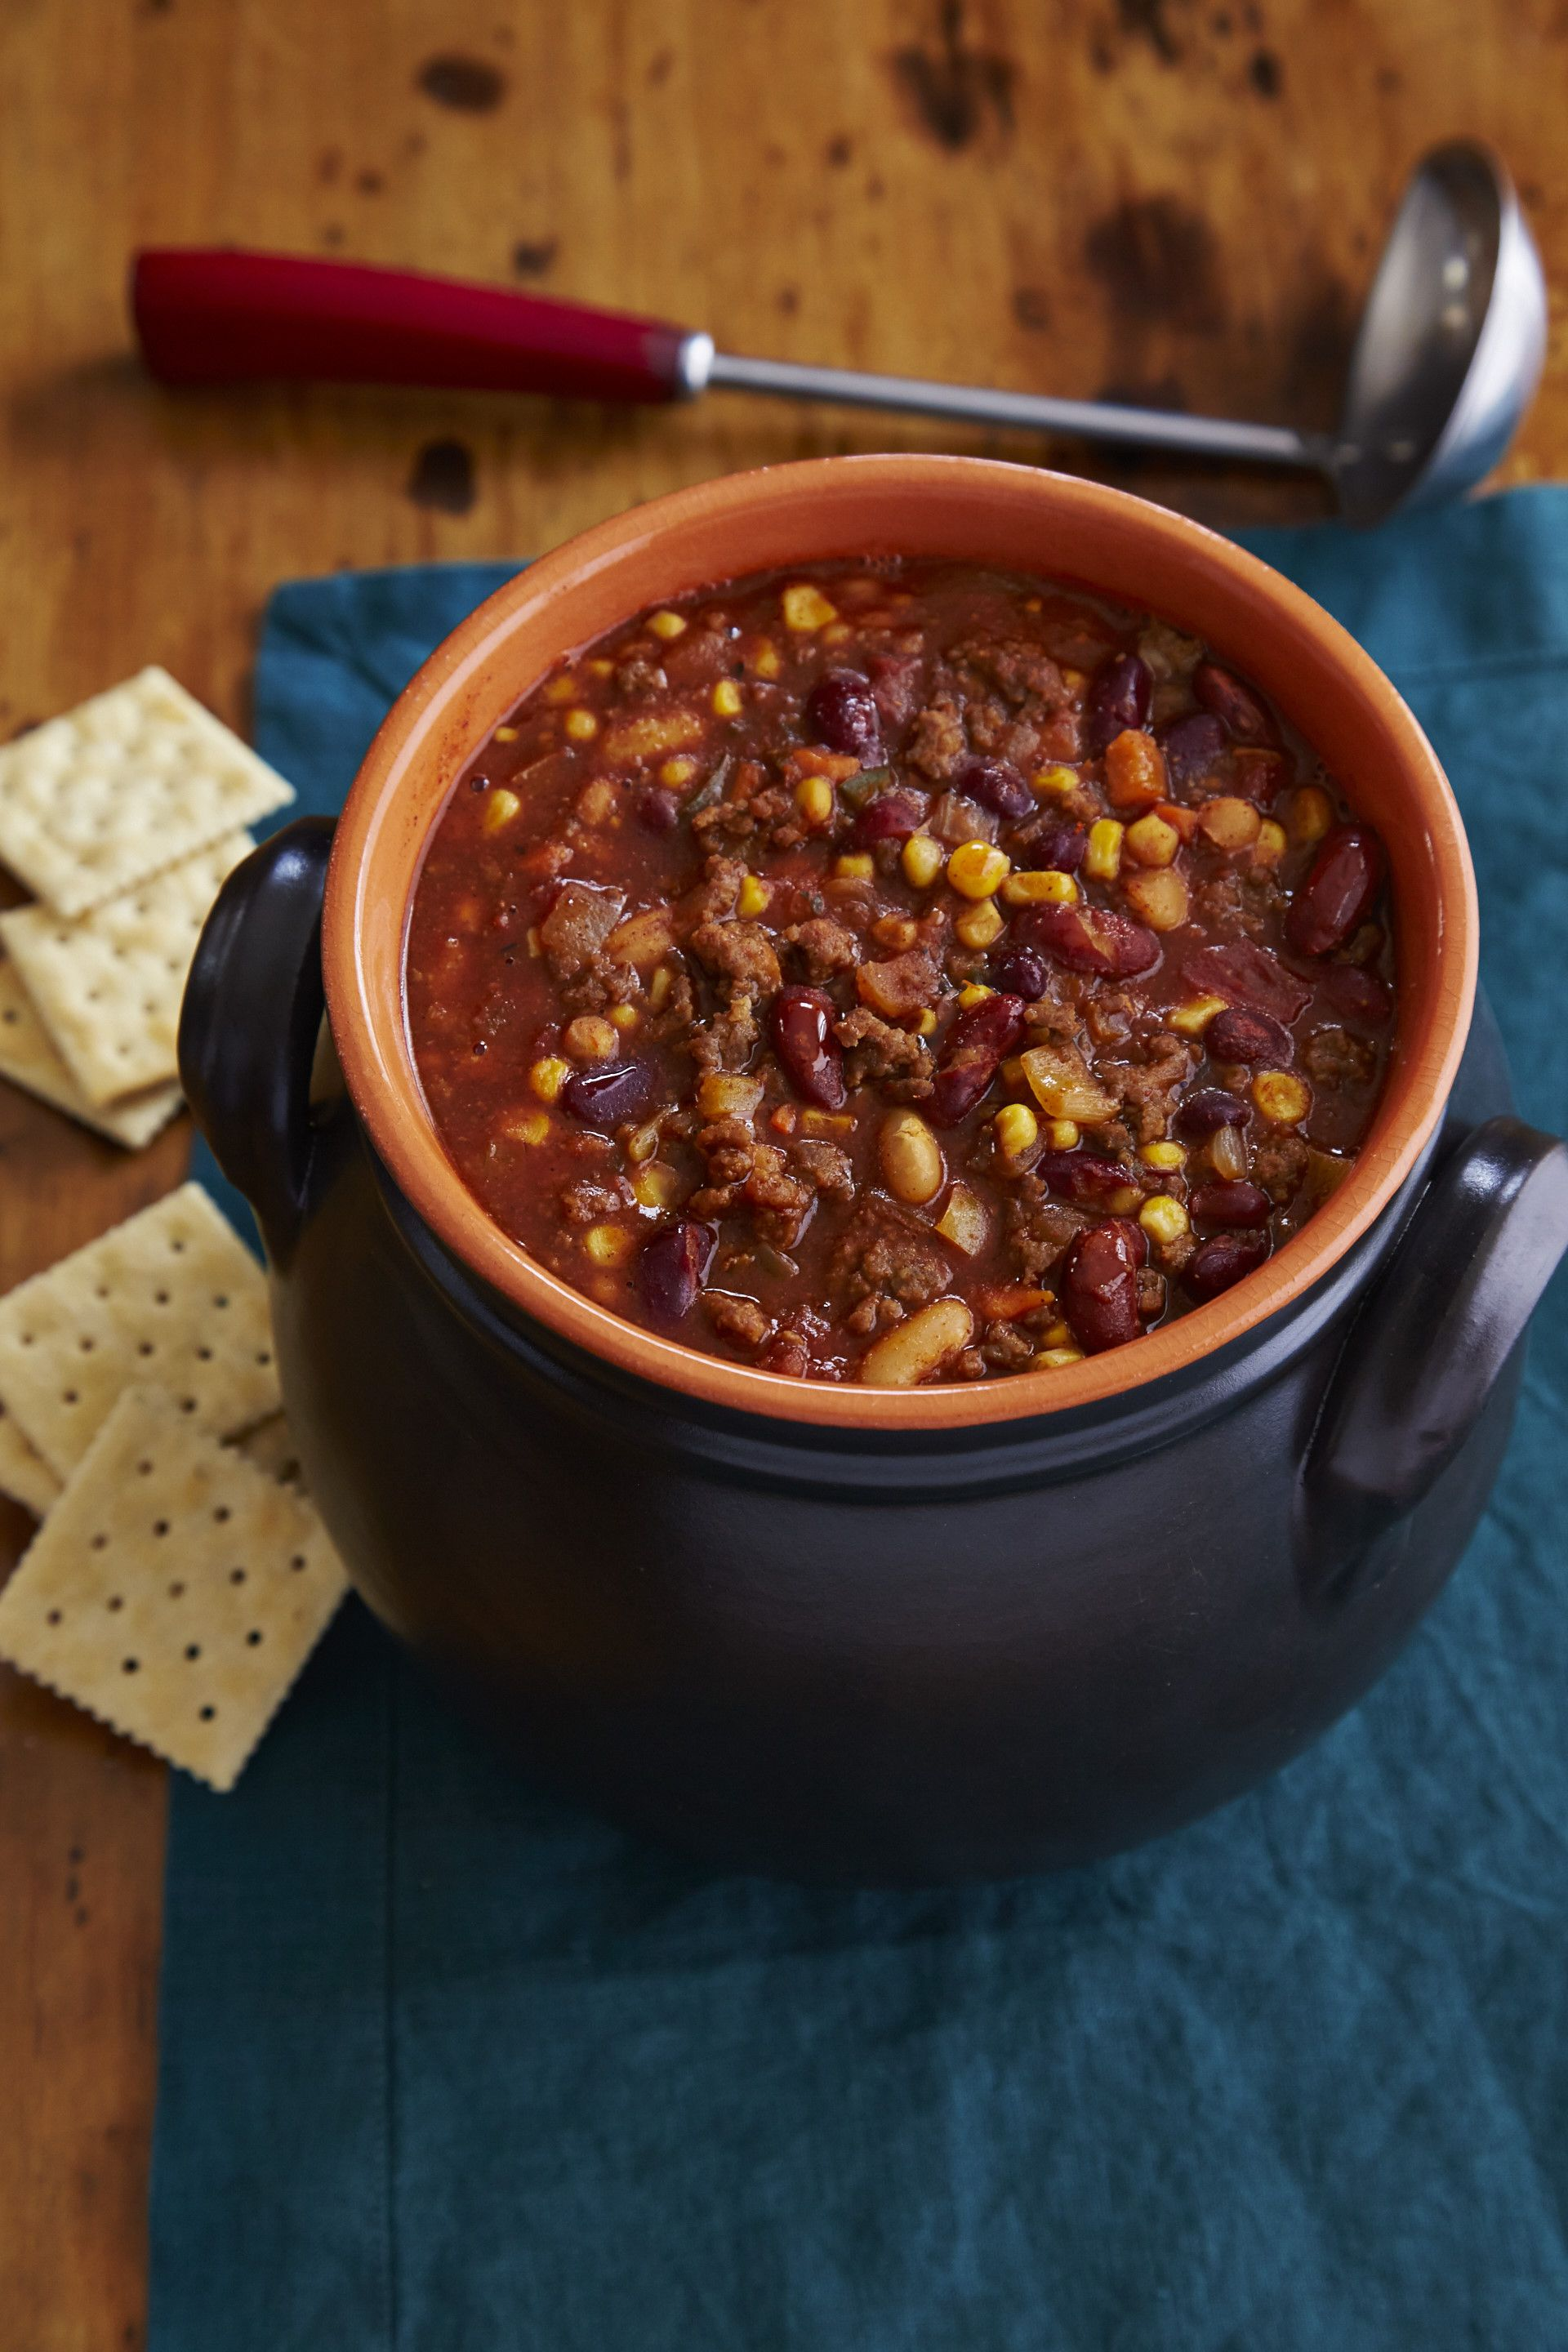 Find more family favorite recipes, and the stories behind them, in The Old Farmer's Almanac Reader's Best Recipes.